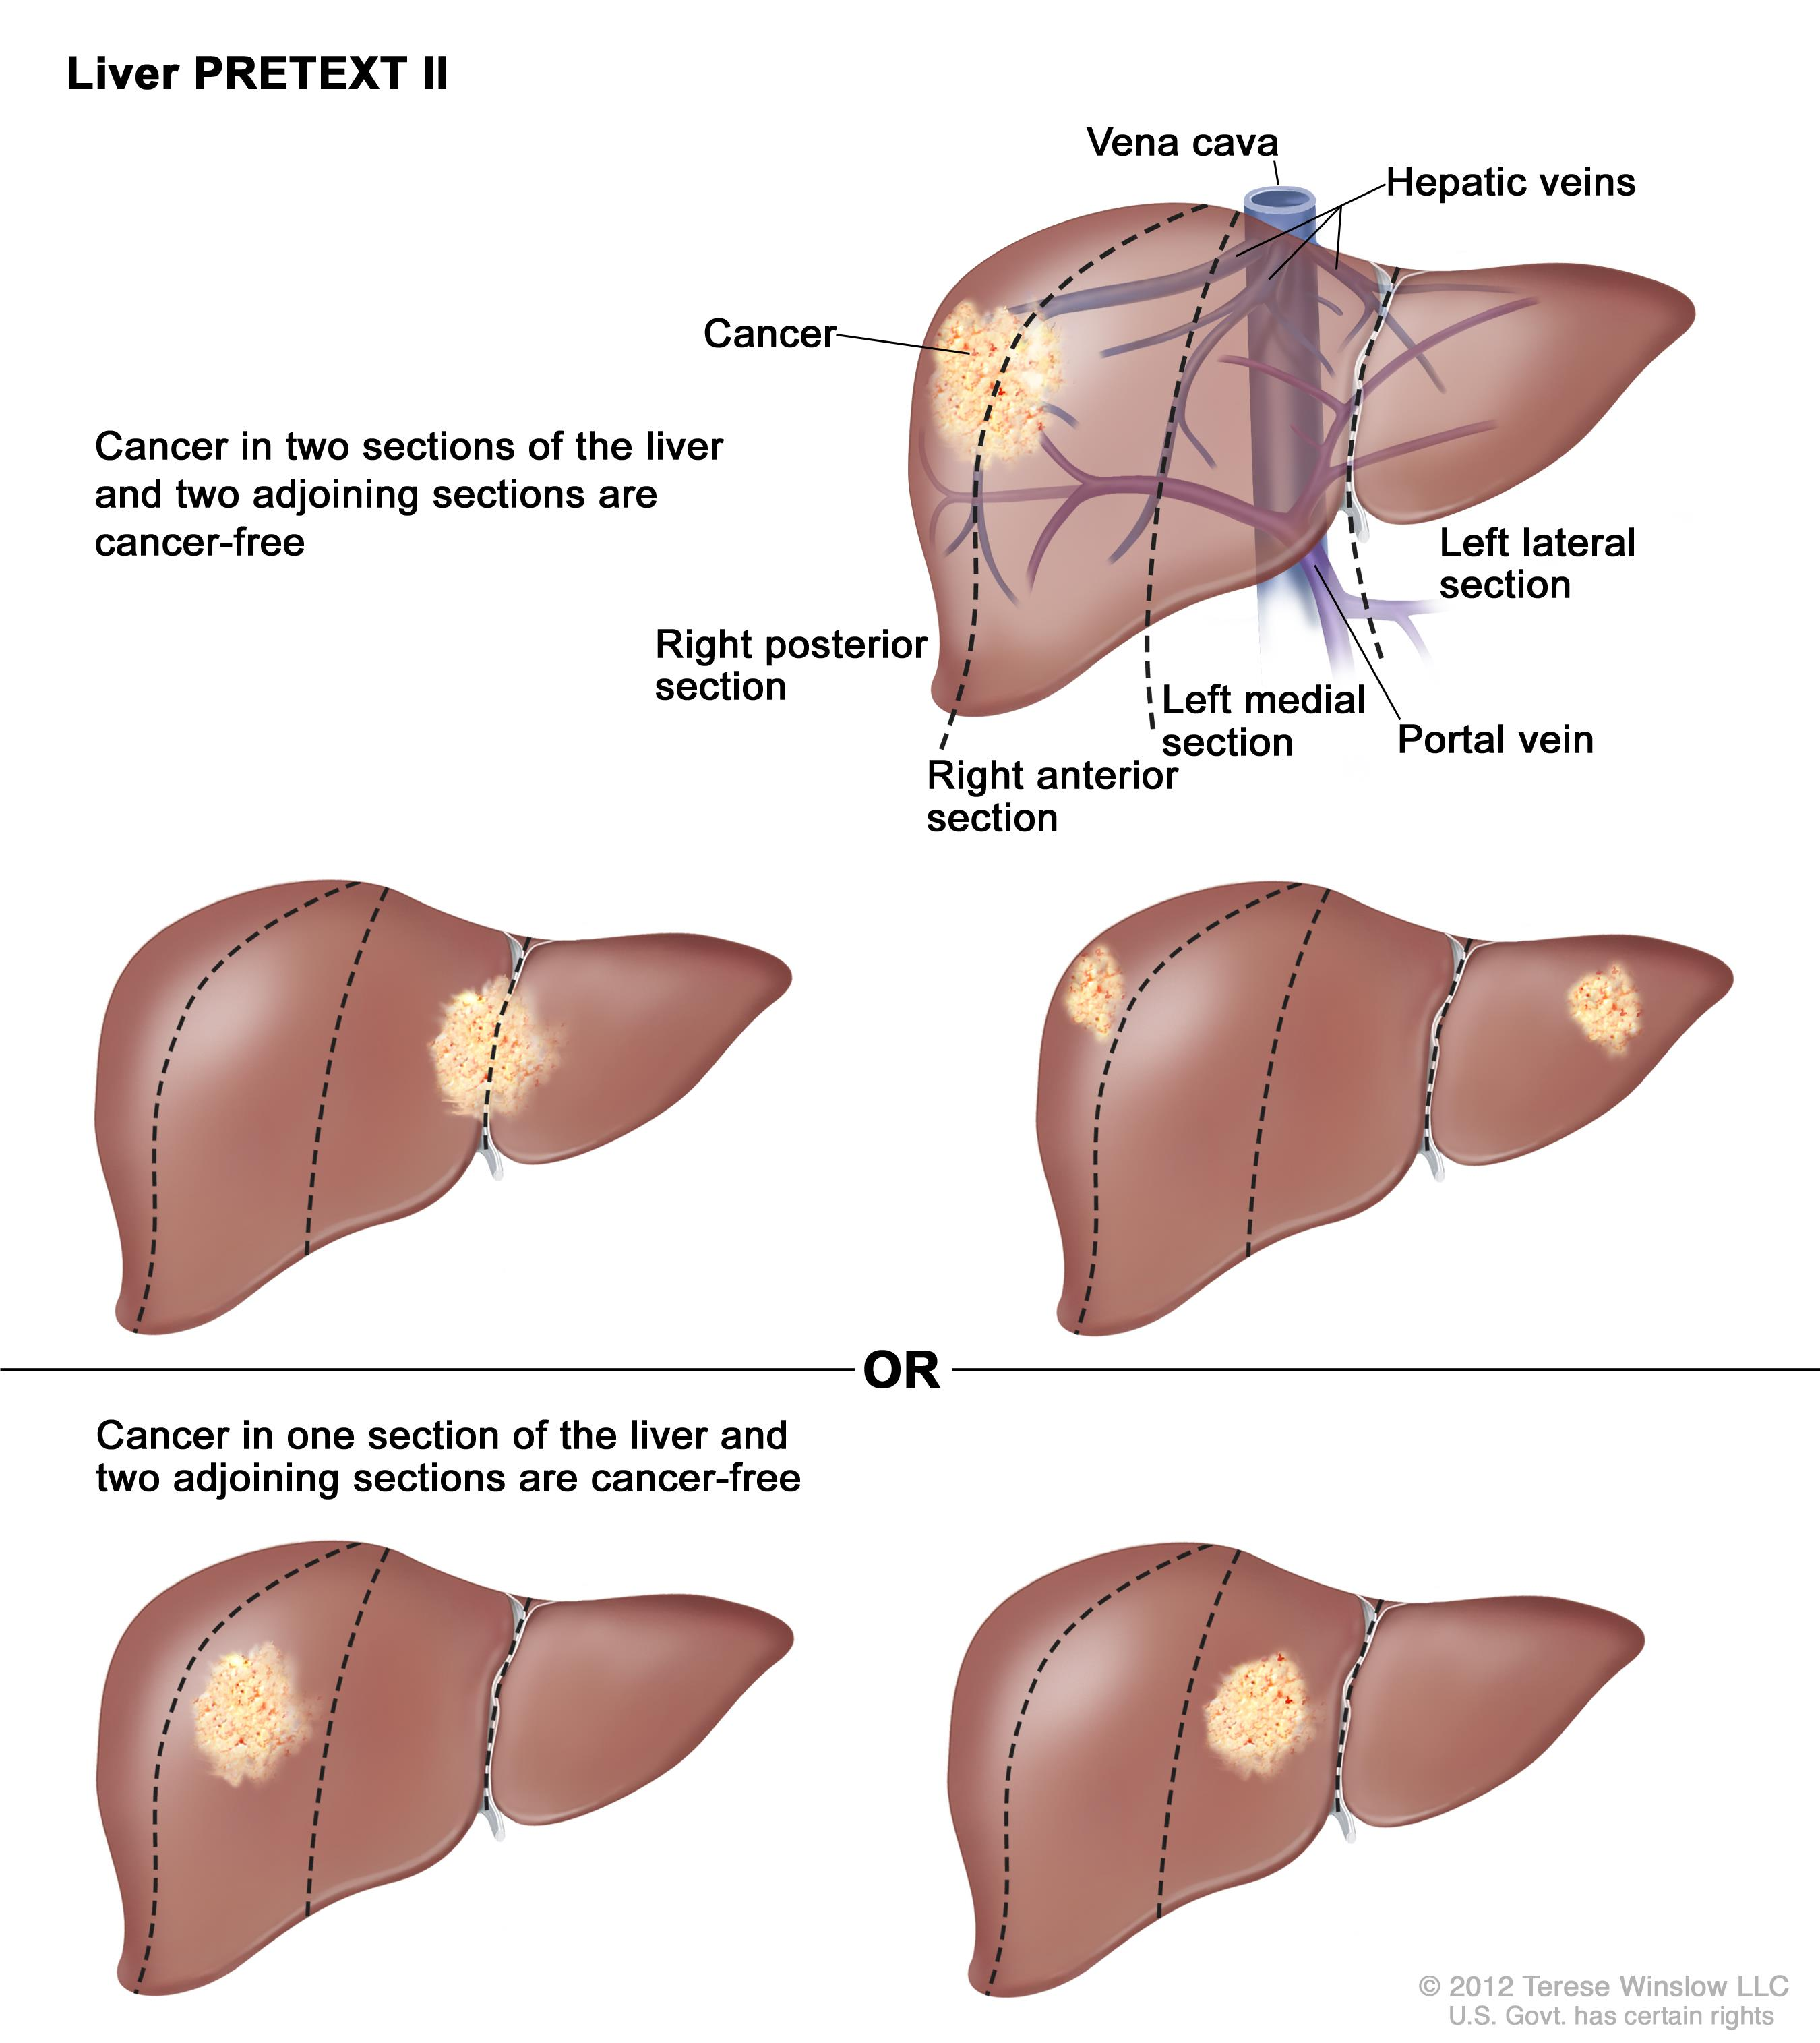 Liver PRETEXT II; drawing shows five livers. Dotted lines divide each liver into four vertical sections that are about the same size. In the first liver, cancer is shown in the two sections on the left.  In the second liver, cancer is shown in the two sections on the right. In the third liver, cancer is shown in the far left and far right sections. In the fourth liver, cancer is shown in the second section from the left.  In the fifth liver, cancer is shown in the second section from the right.